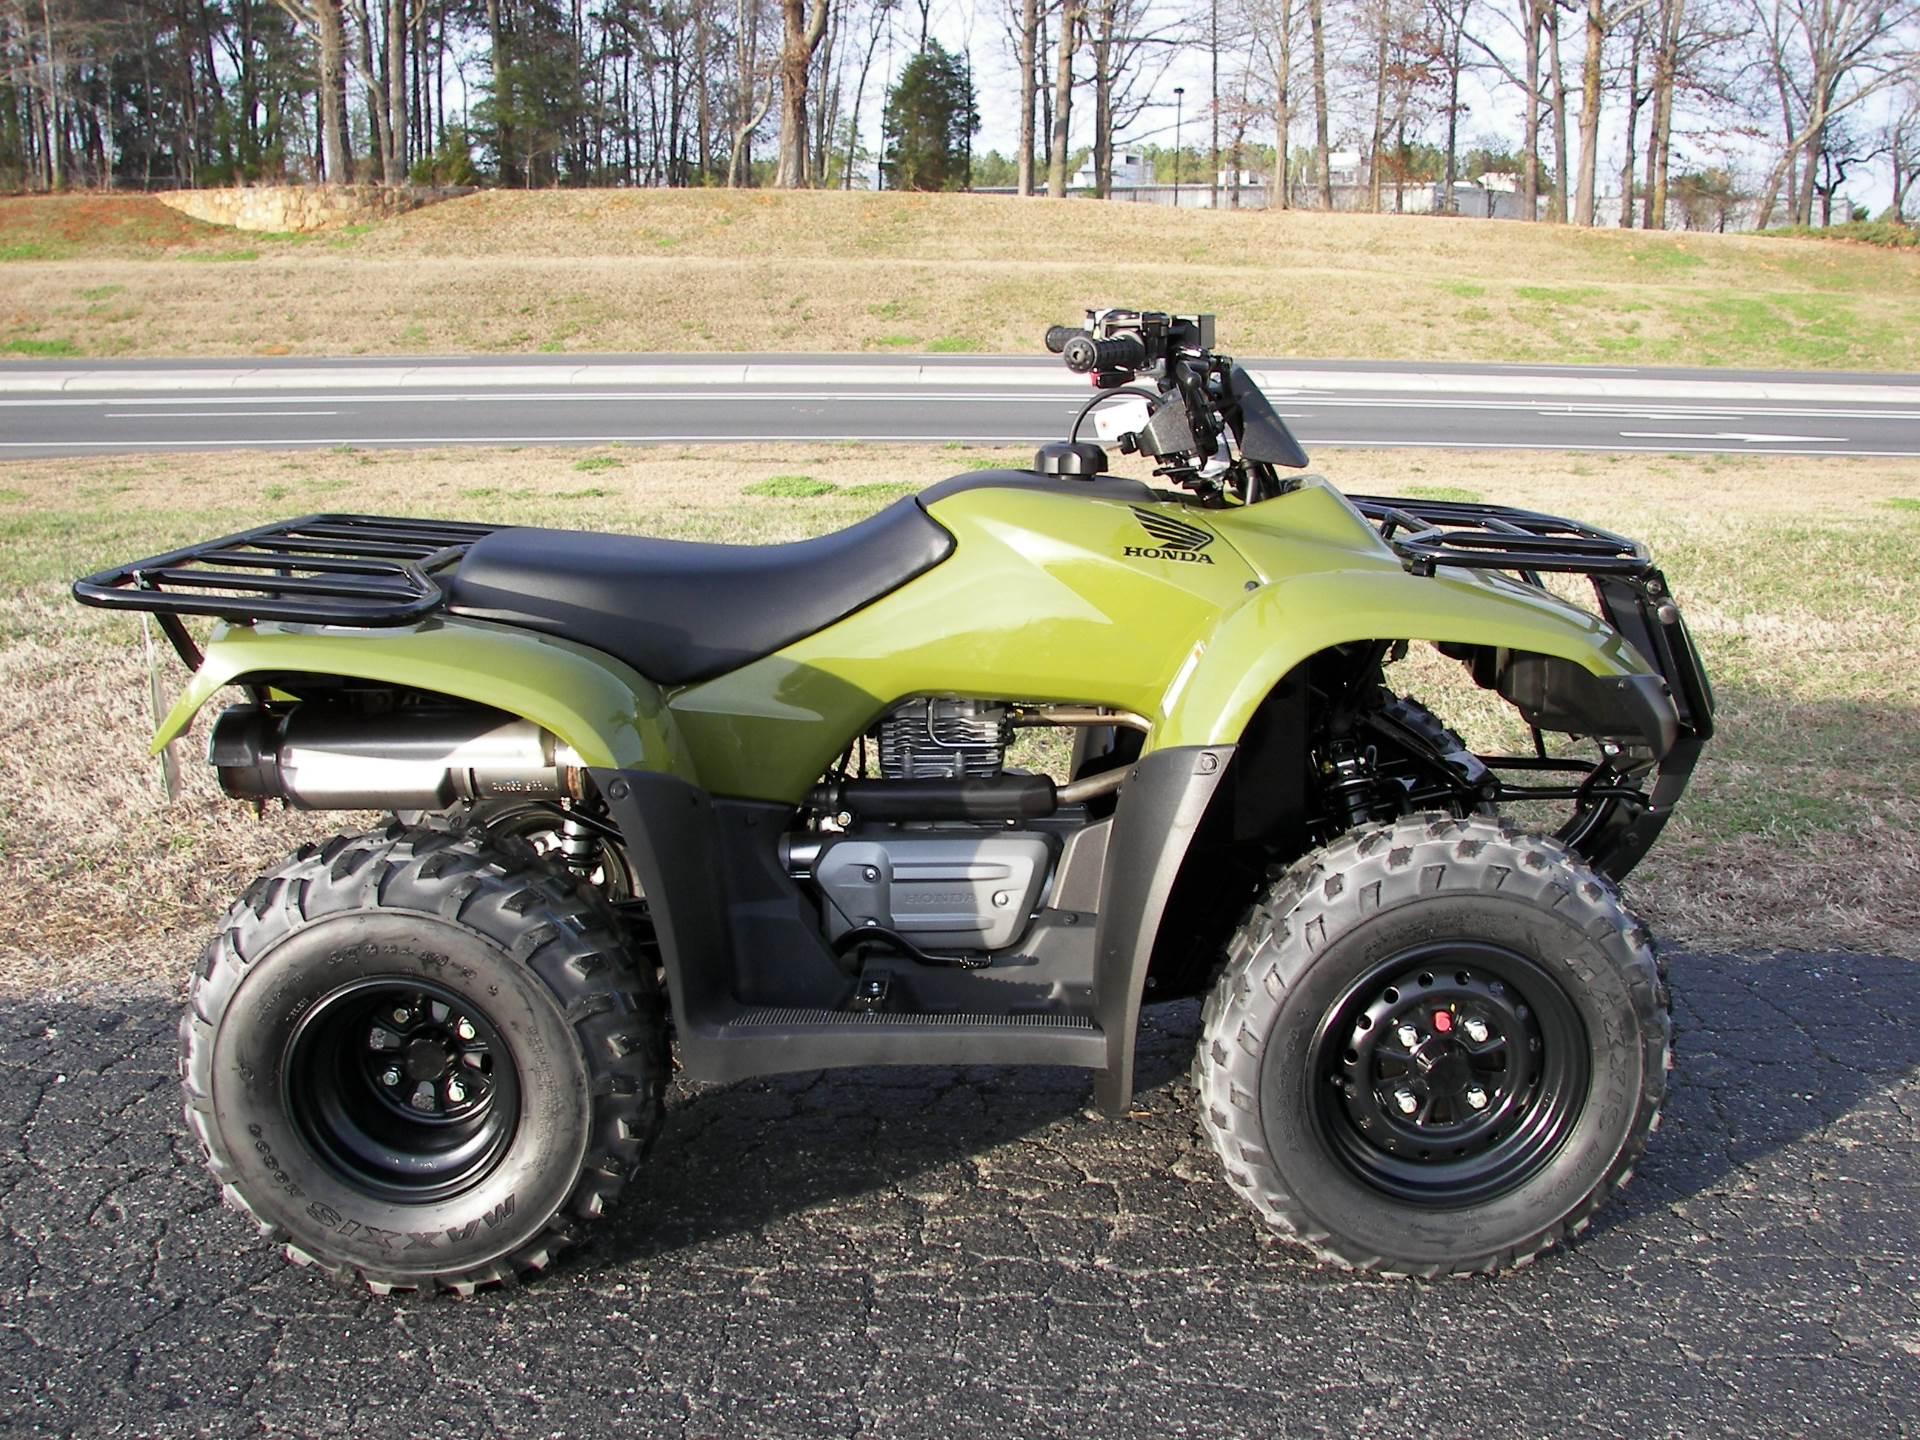 image opinion forums name honda for general discussion a version atv views on recon larger size click forum